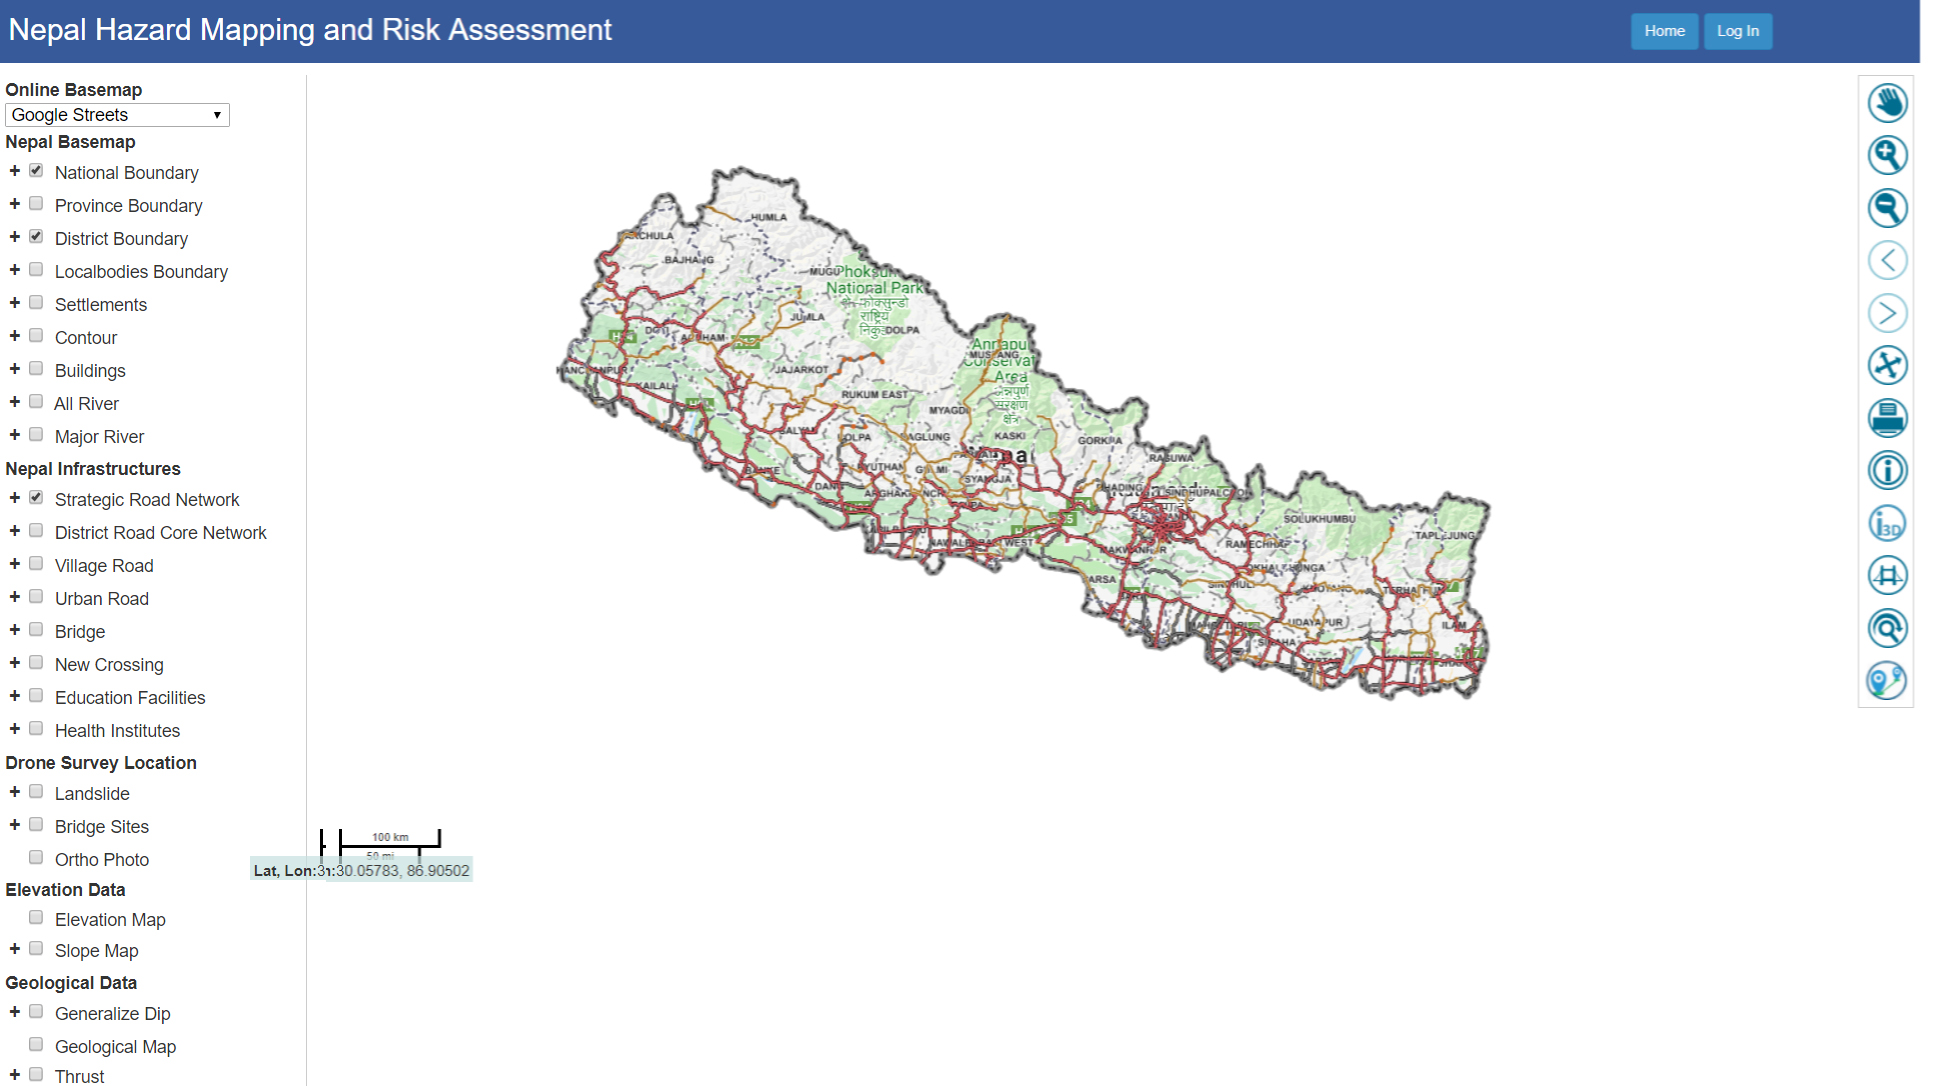 NEPAL HAZARD MAPPING AND RISK ASSESSMENT